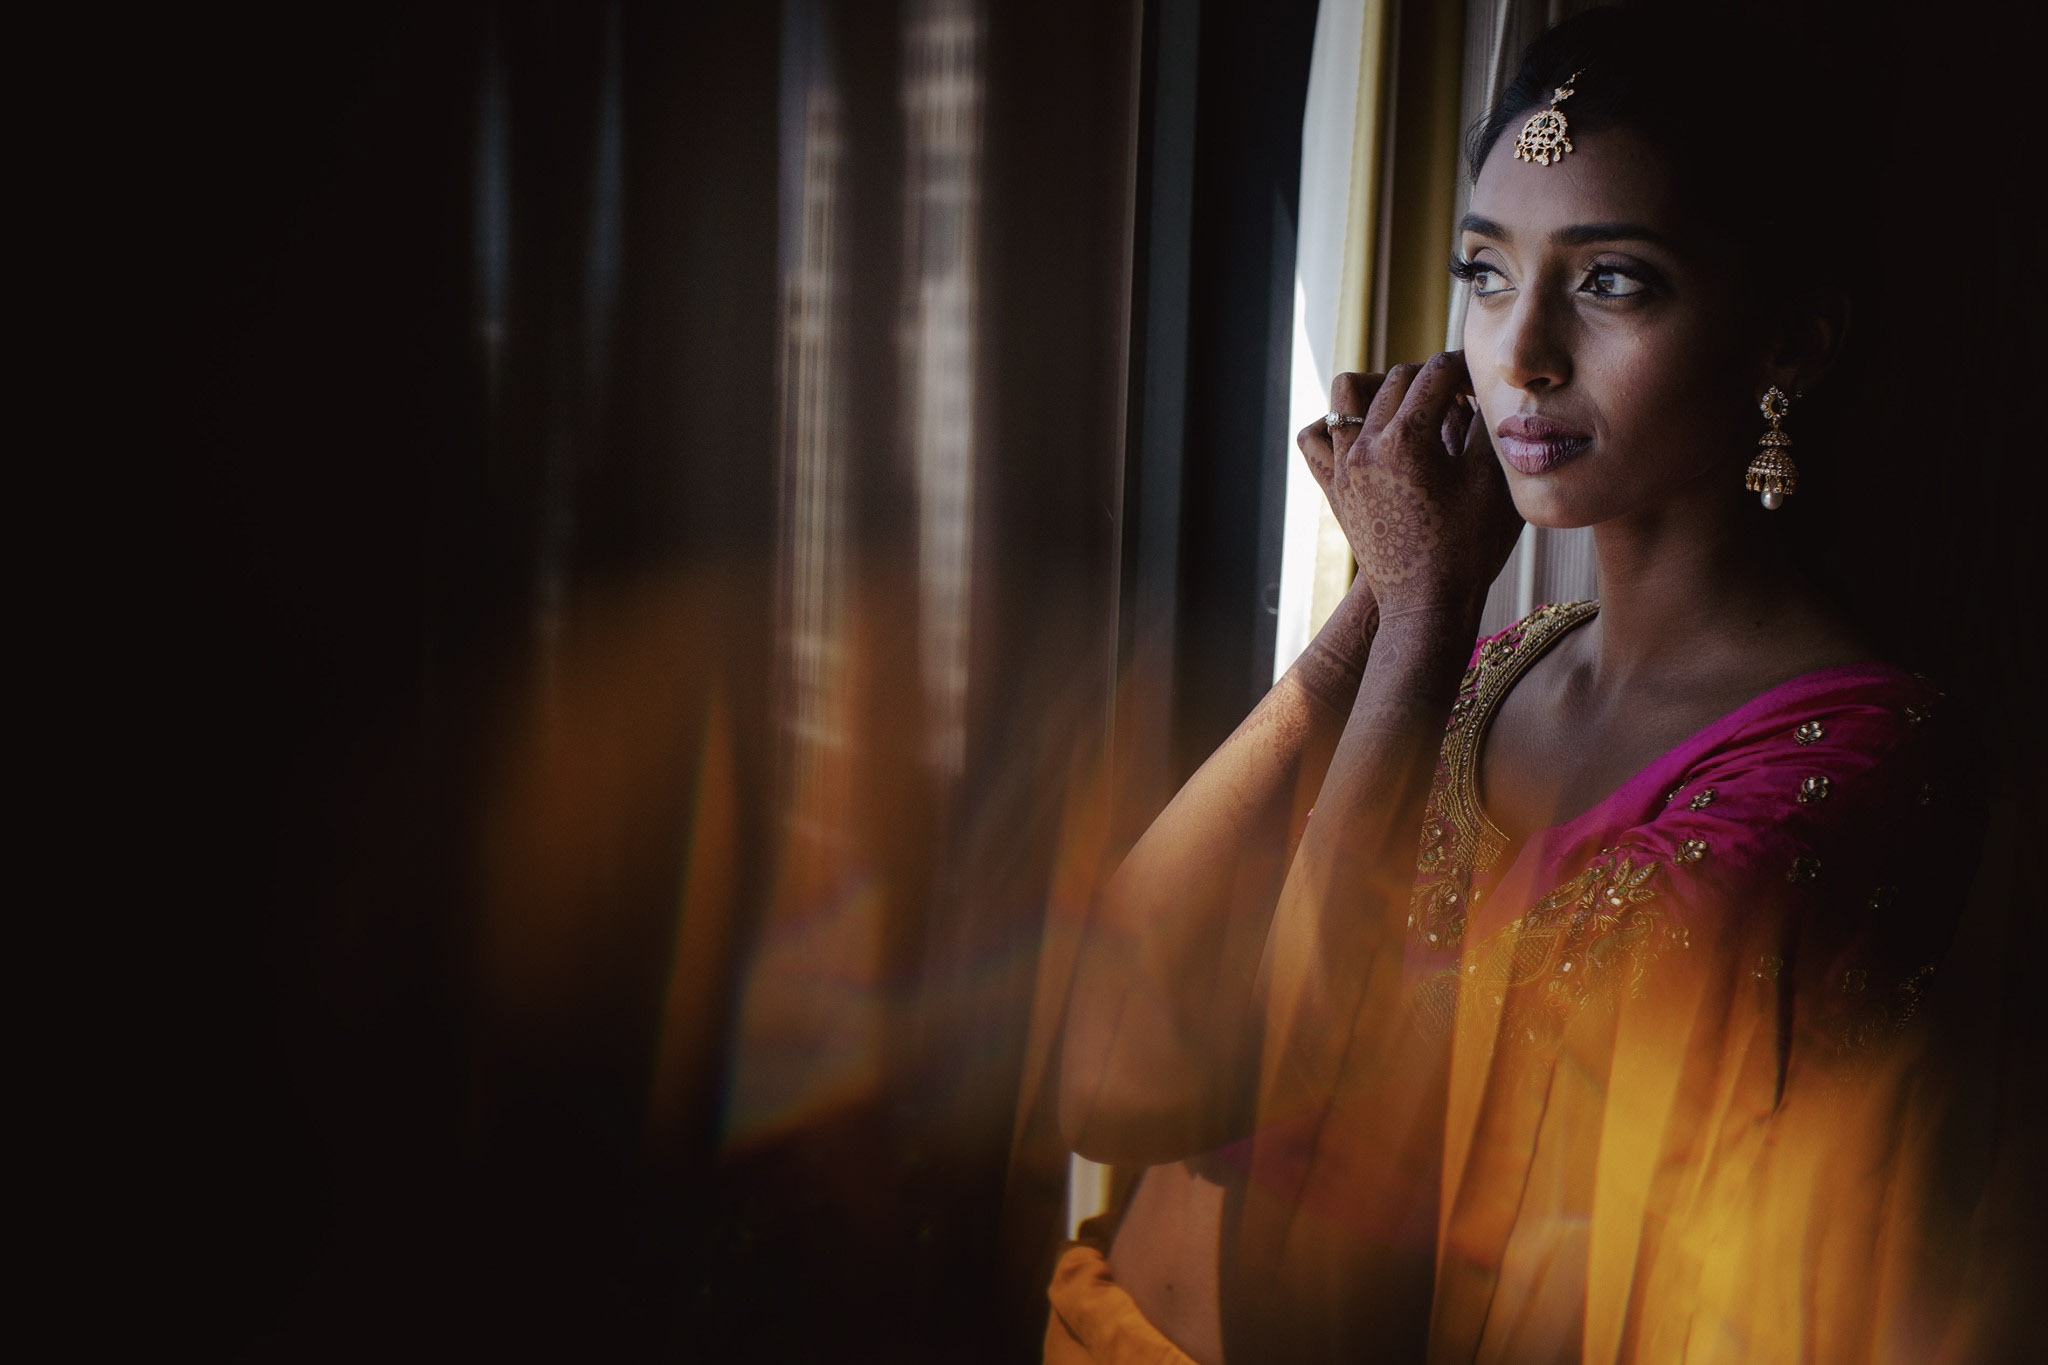 Mid angle shot of an Indian bride getting ready and wearing earrings in front of a window